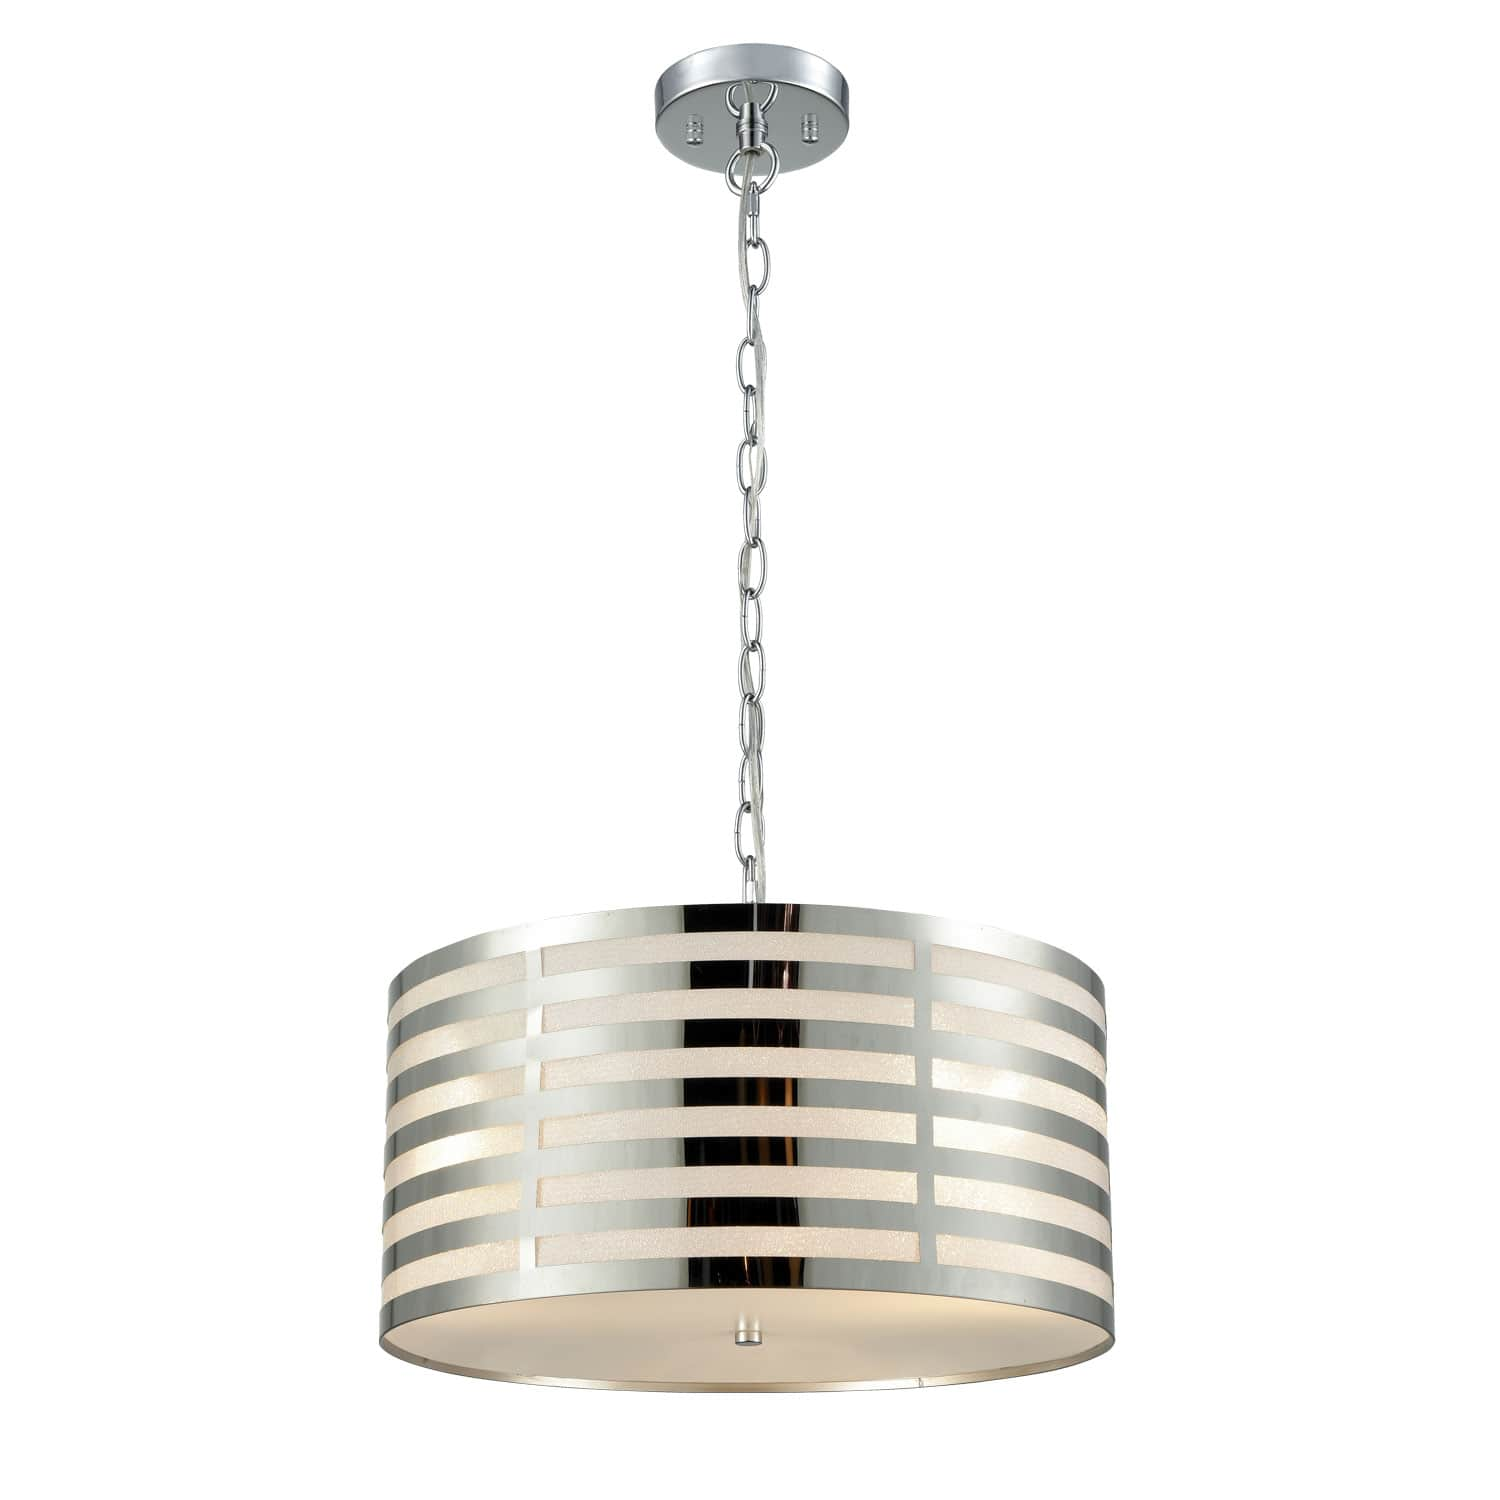 Modern Pendant Chandelier Chrome Finish with Drum Shade